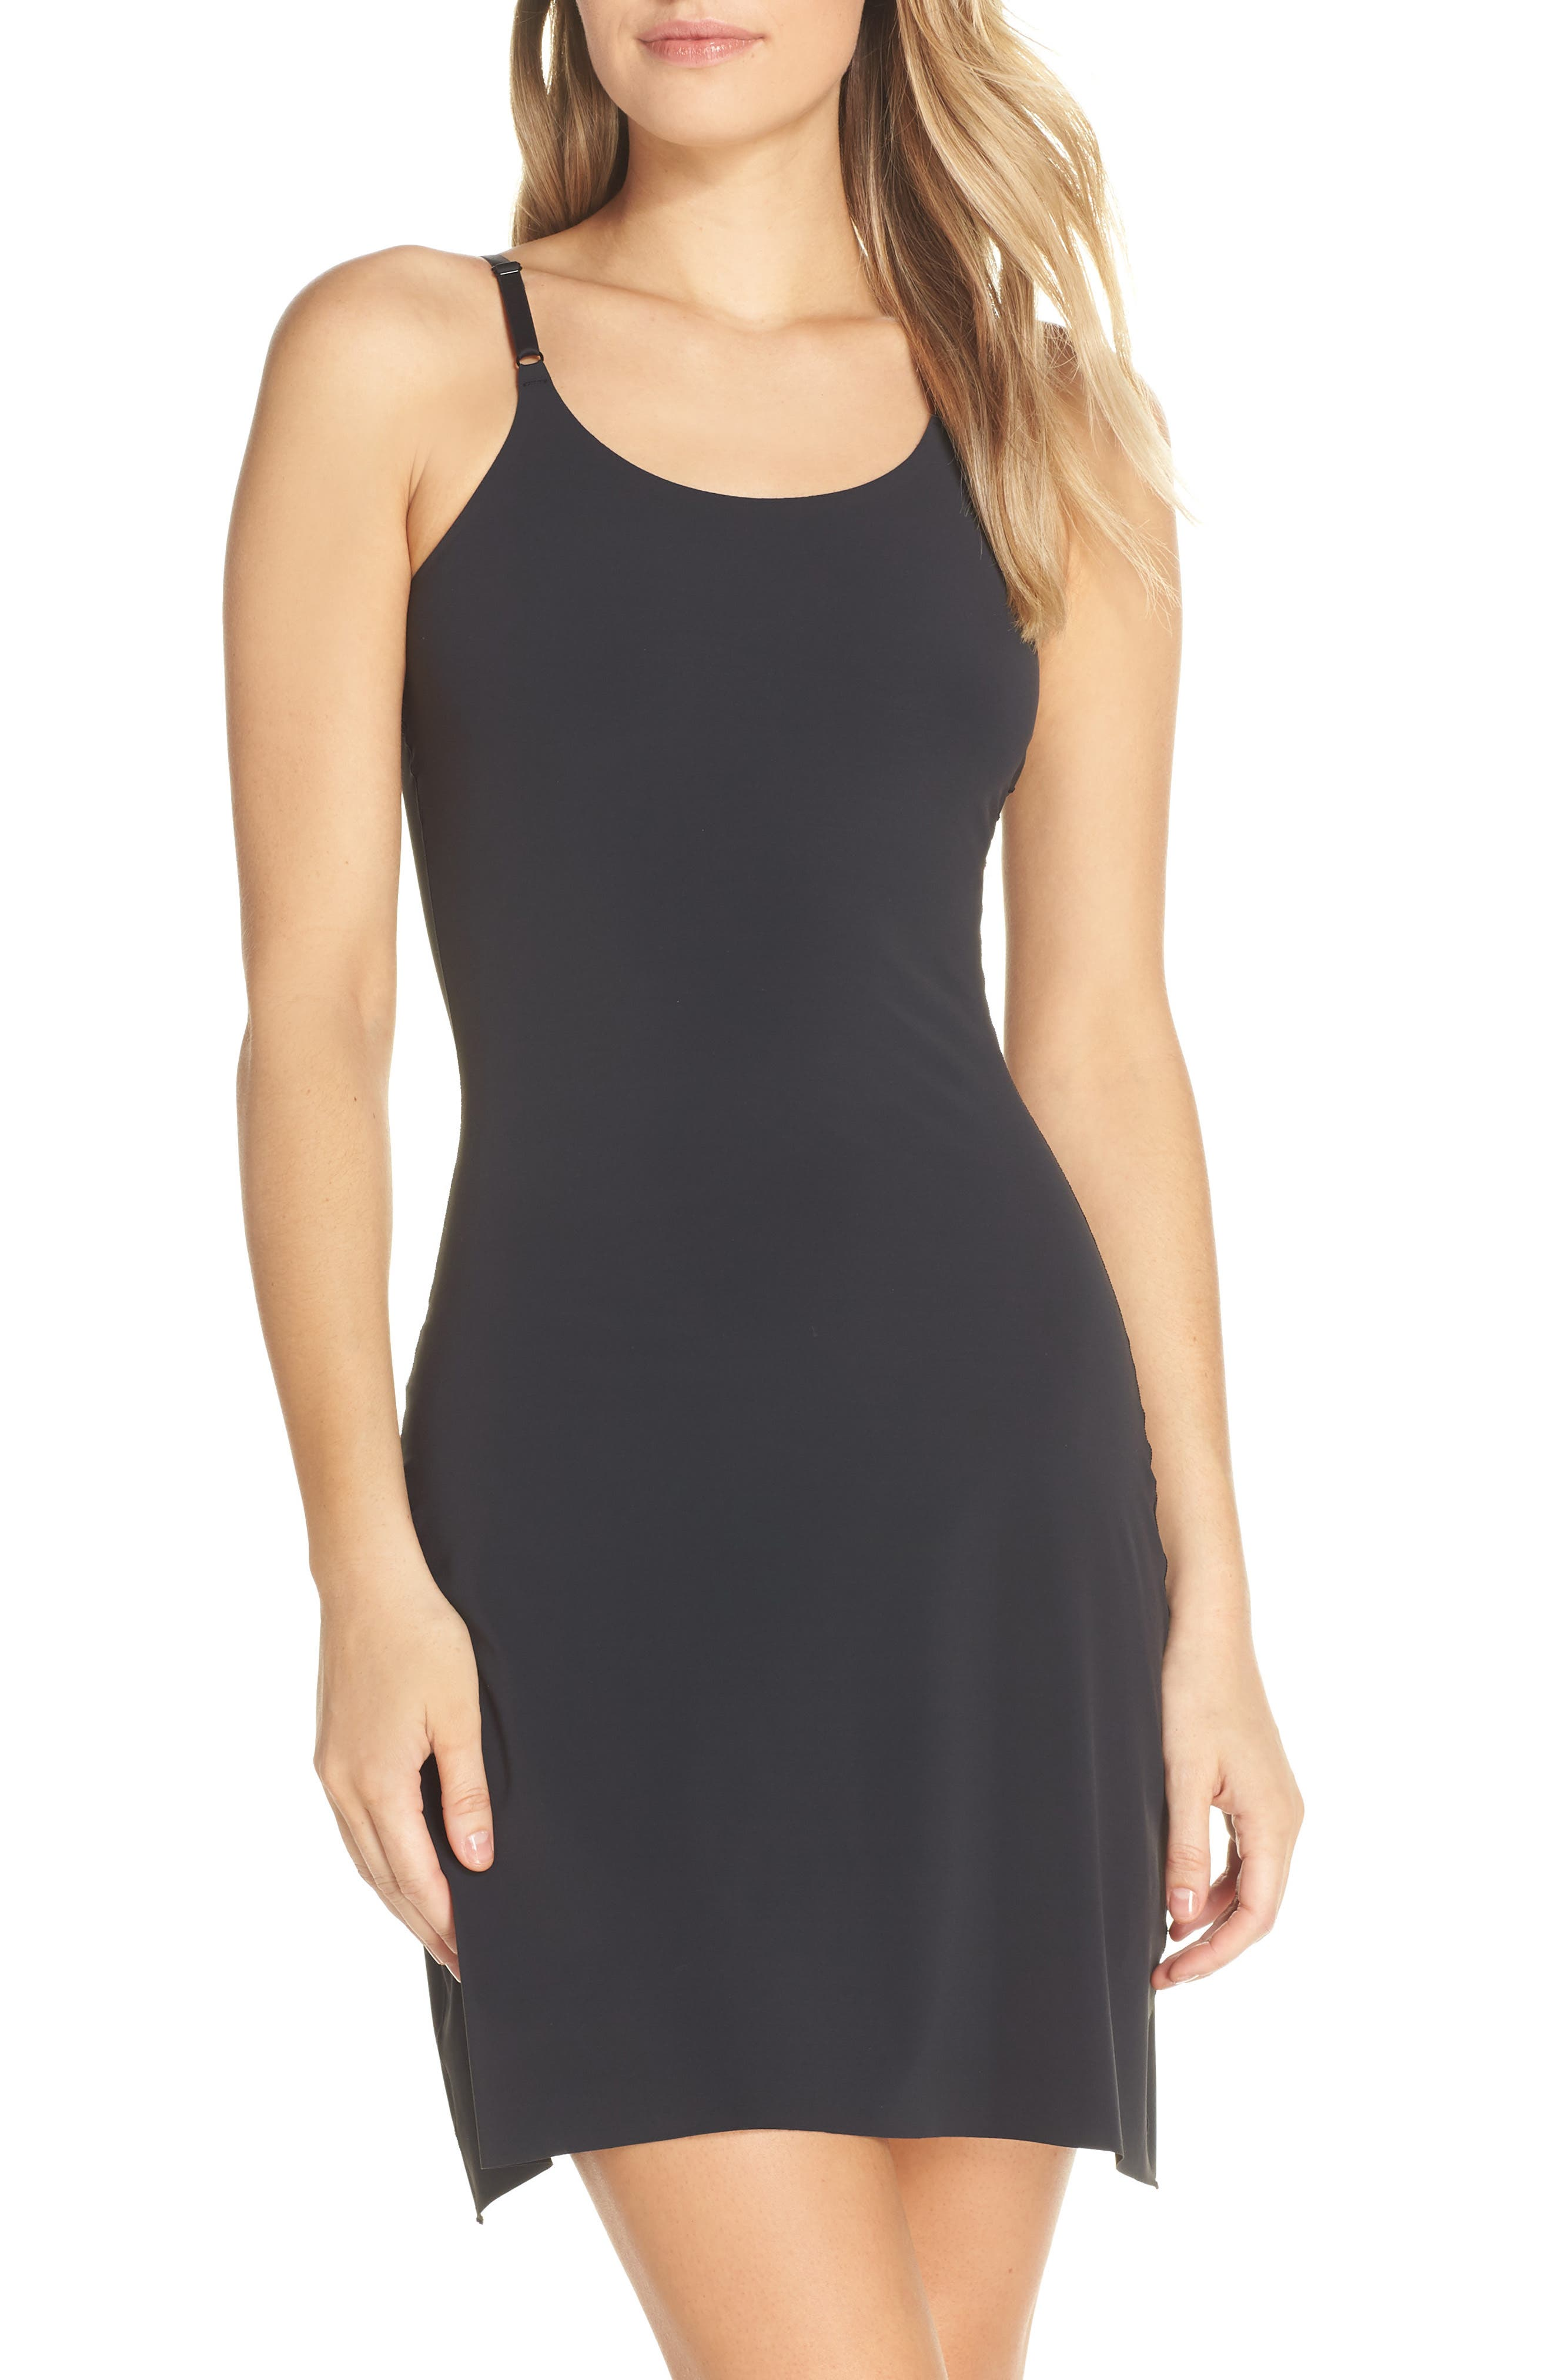 YUMMIE Smooth Solutions A-Line Slip, Main, color, BLACK